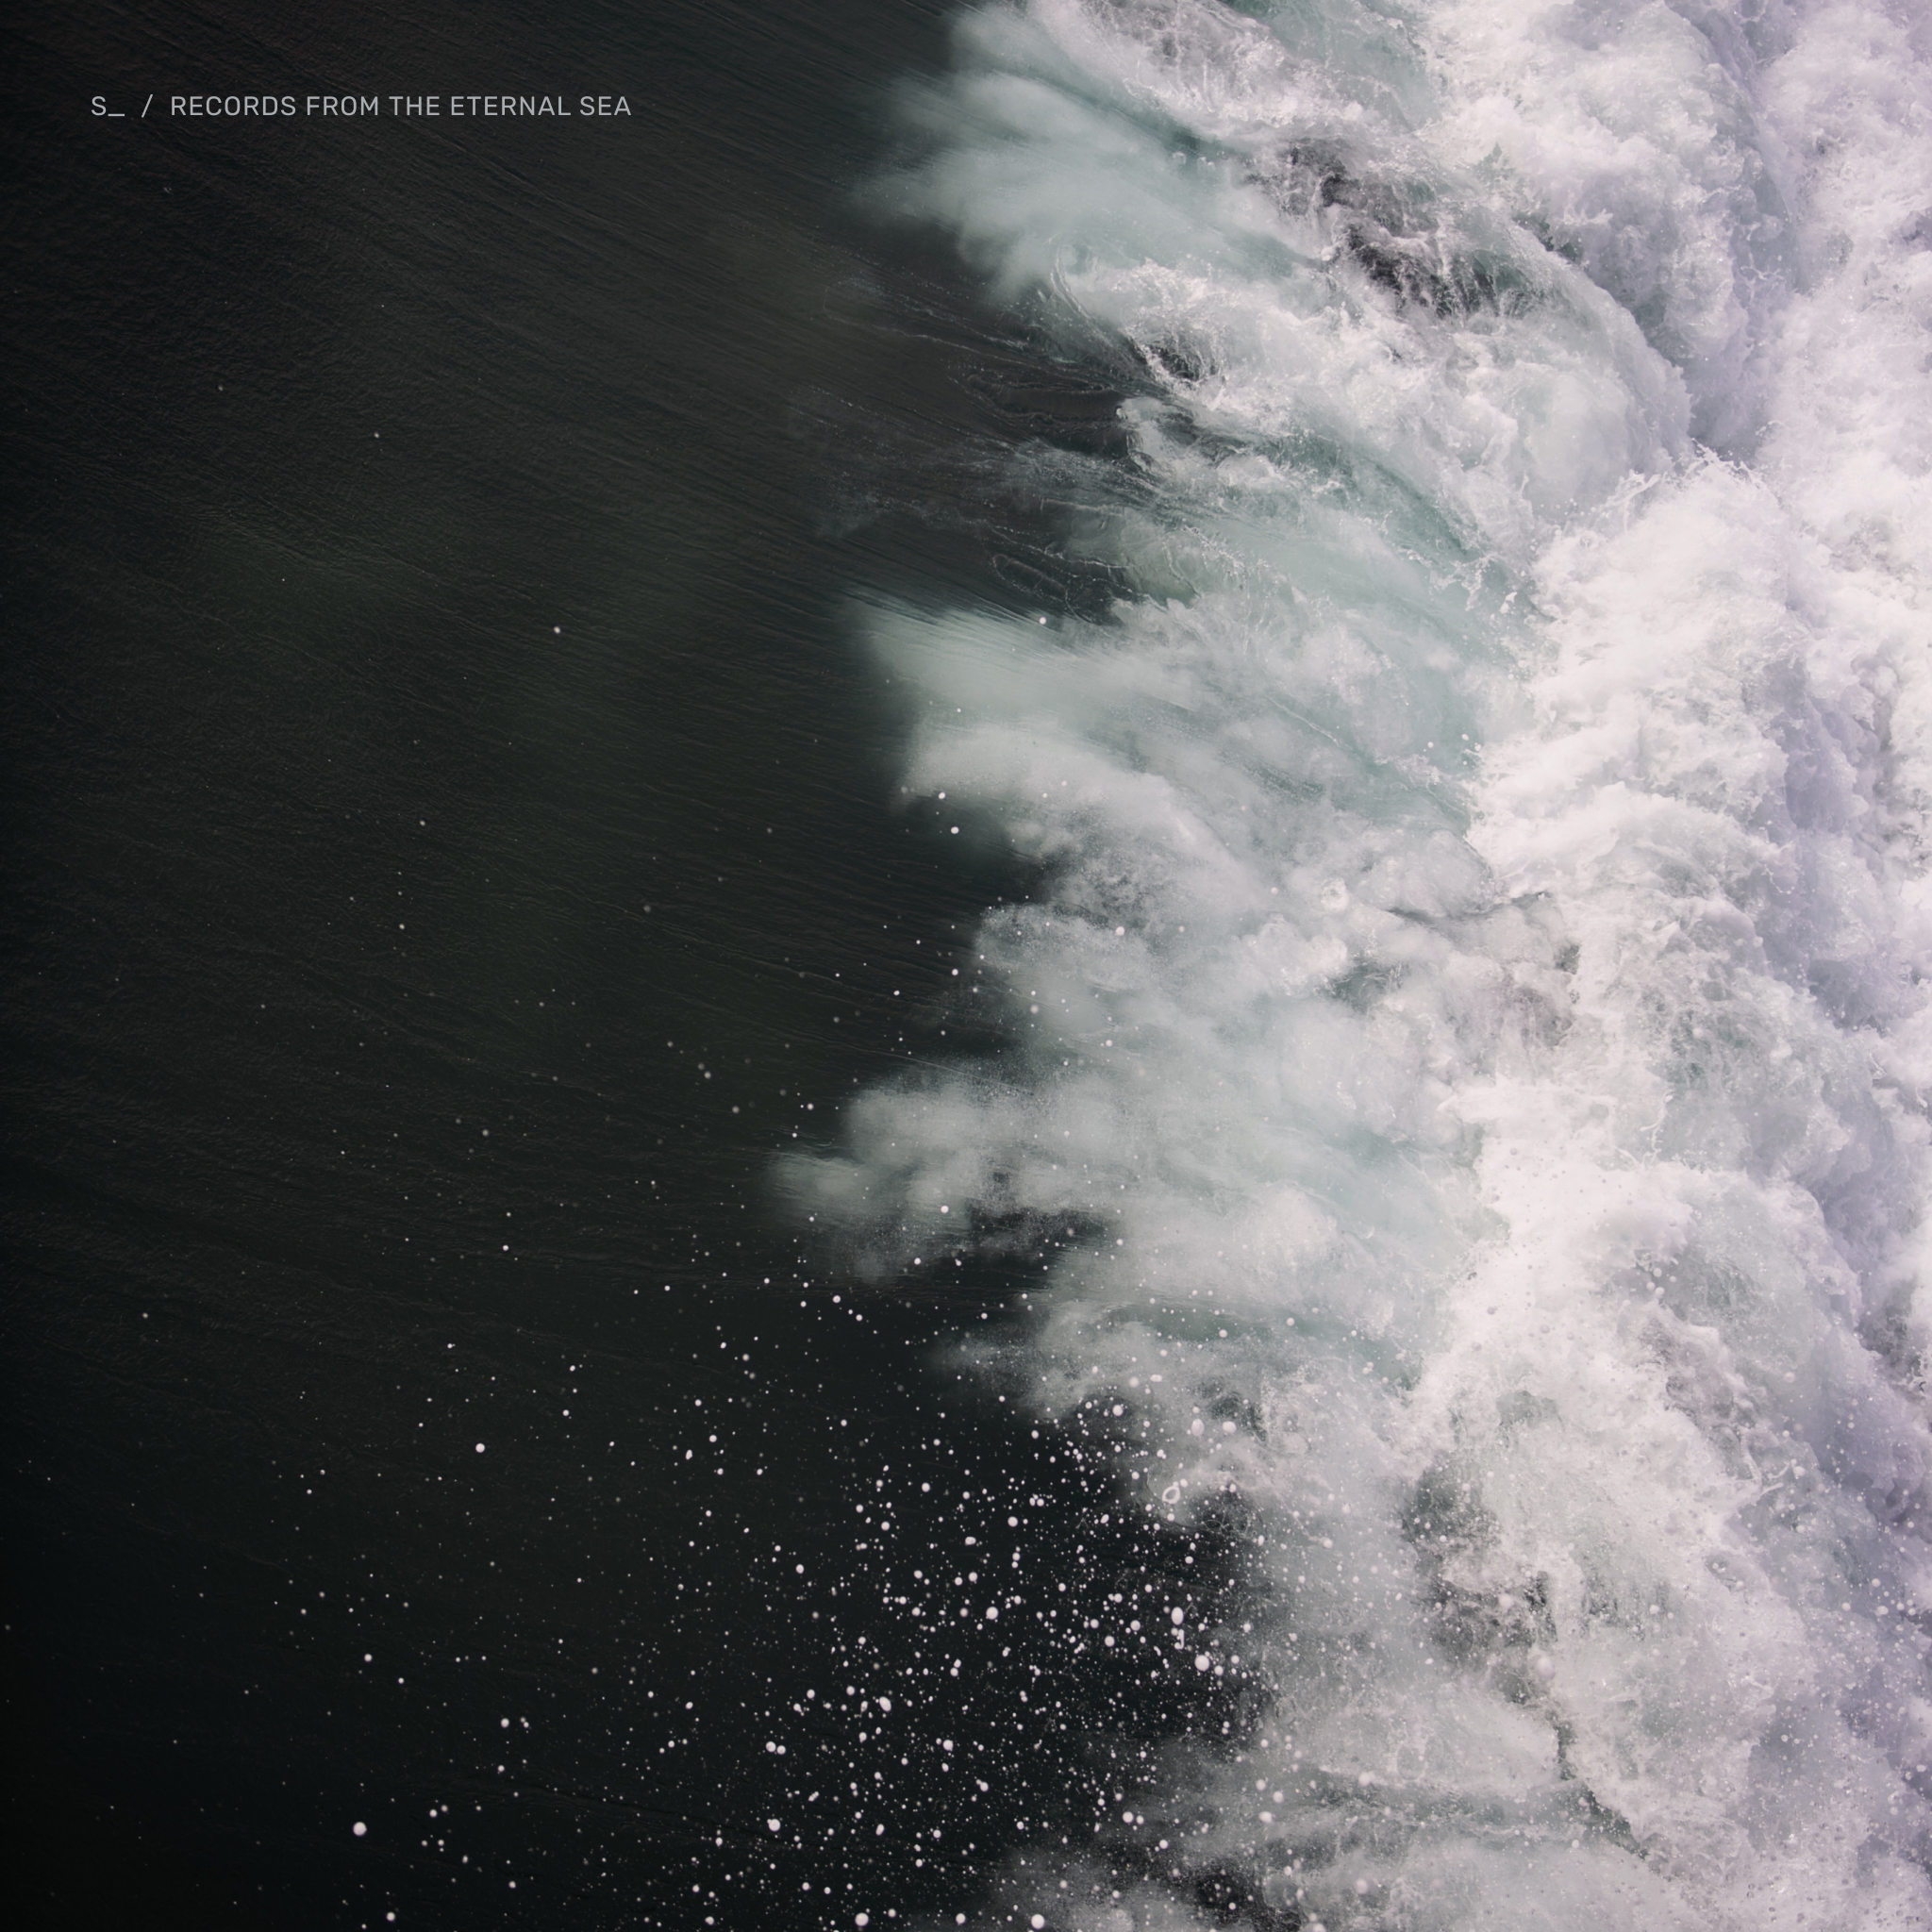 Image of records from the eternal sea album cover.